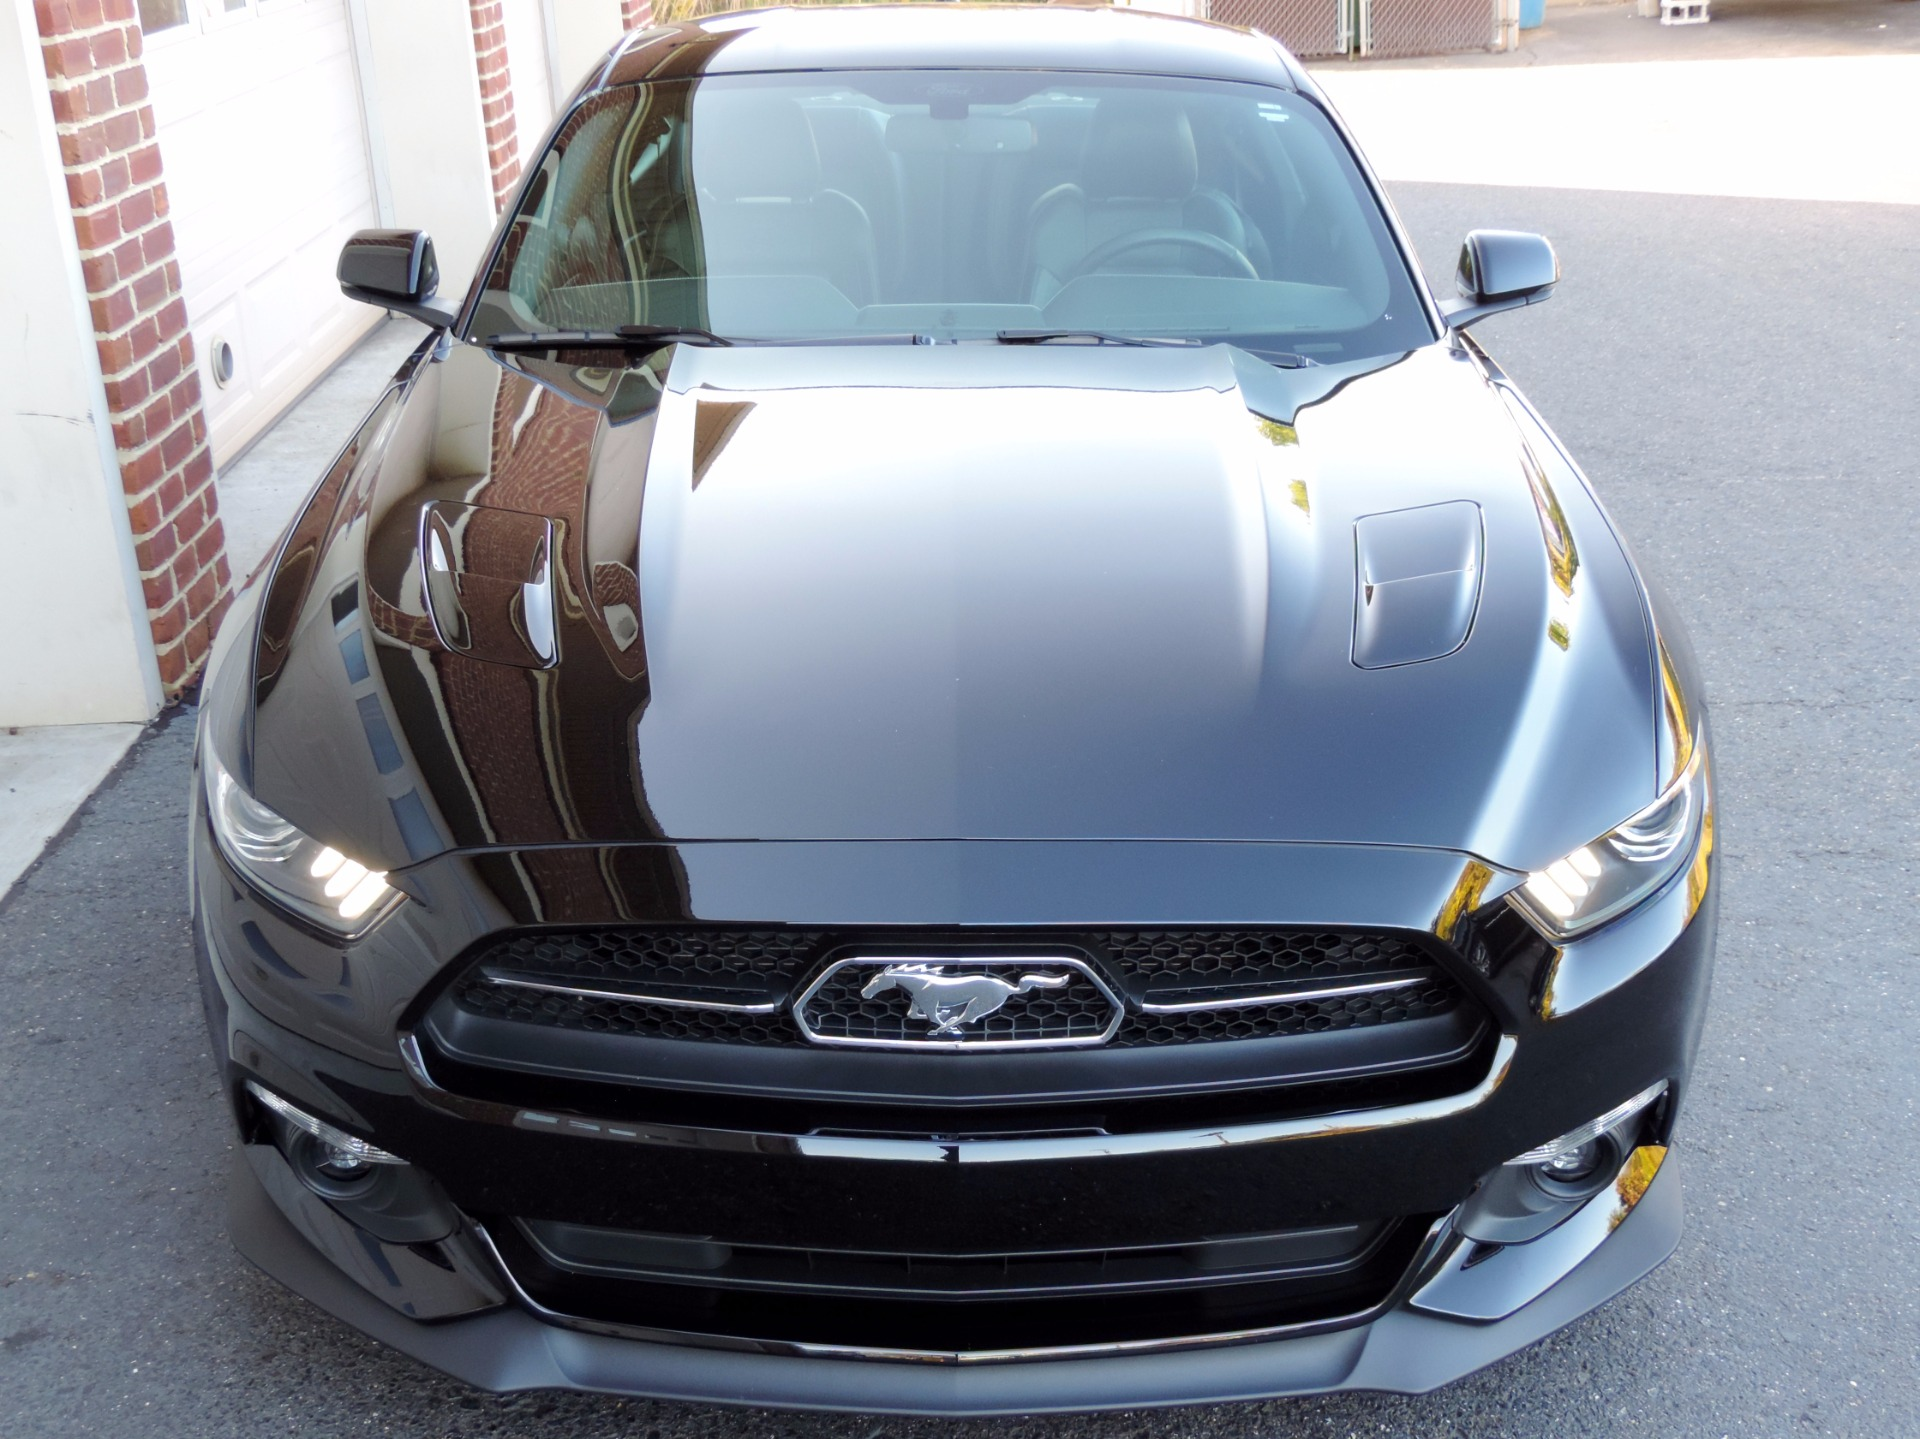 Ford Dealers Nj >> 2015 Ford Mustang GT Premium Stock # 304487 for sale near ...